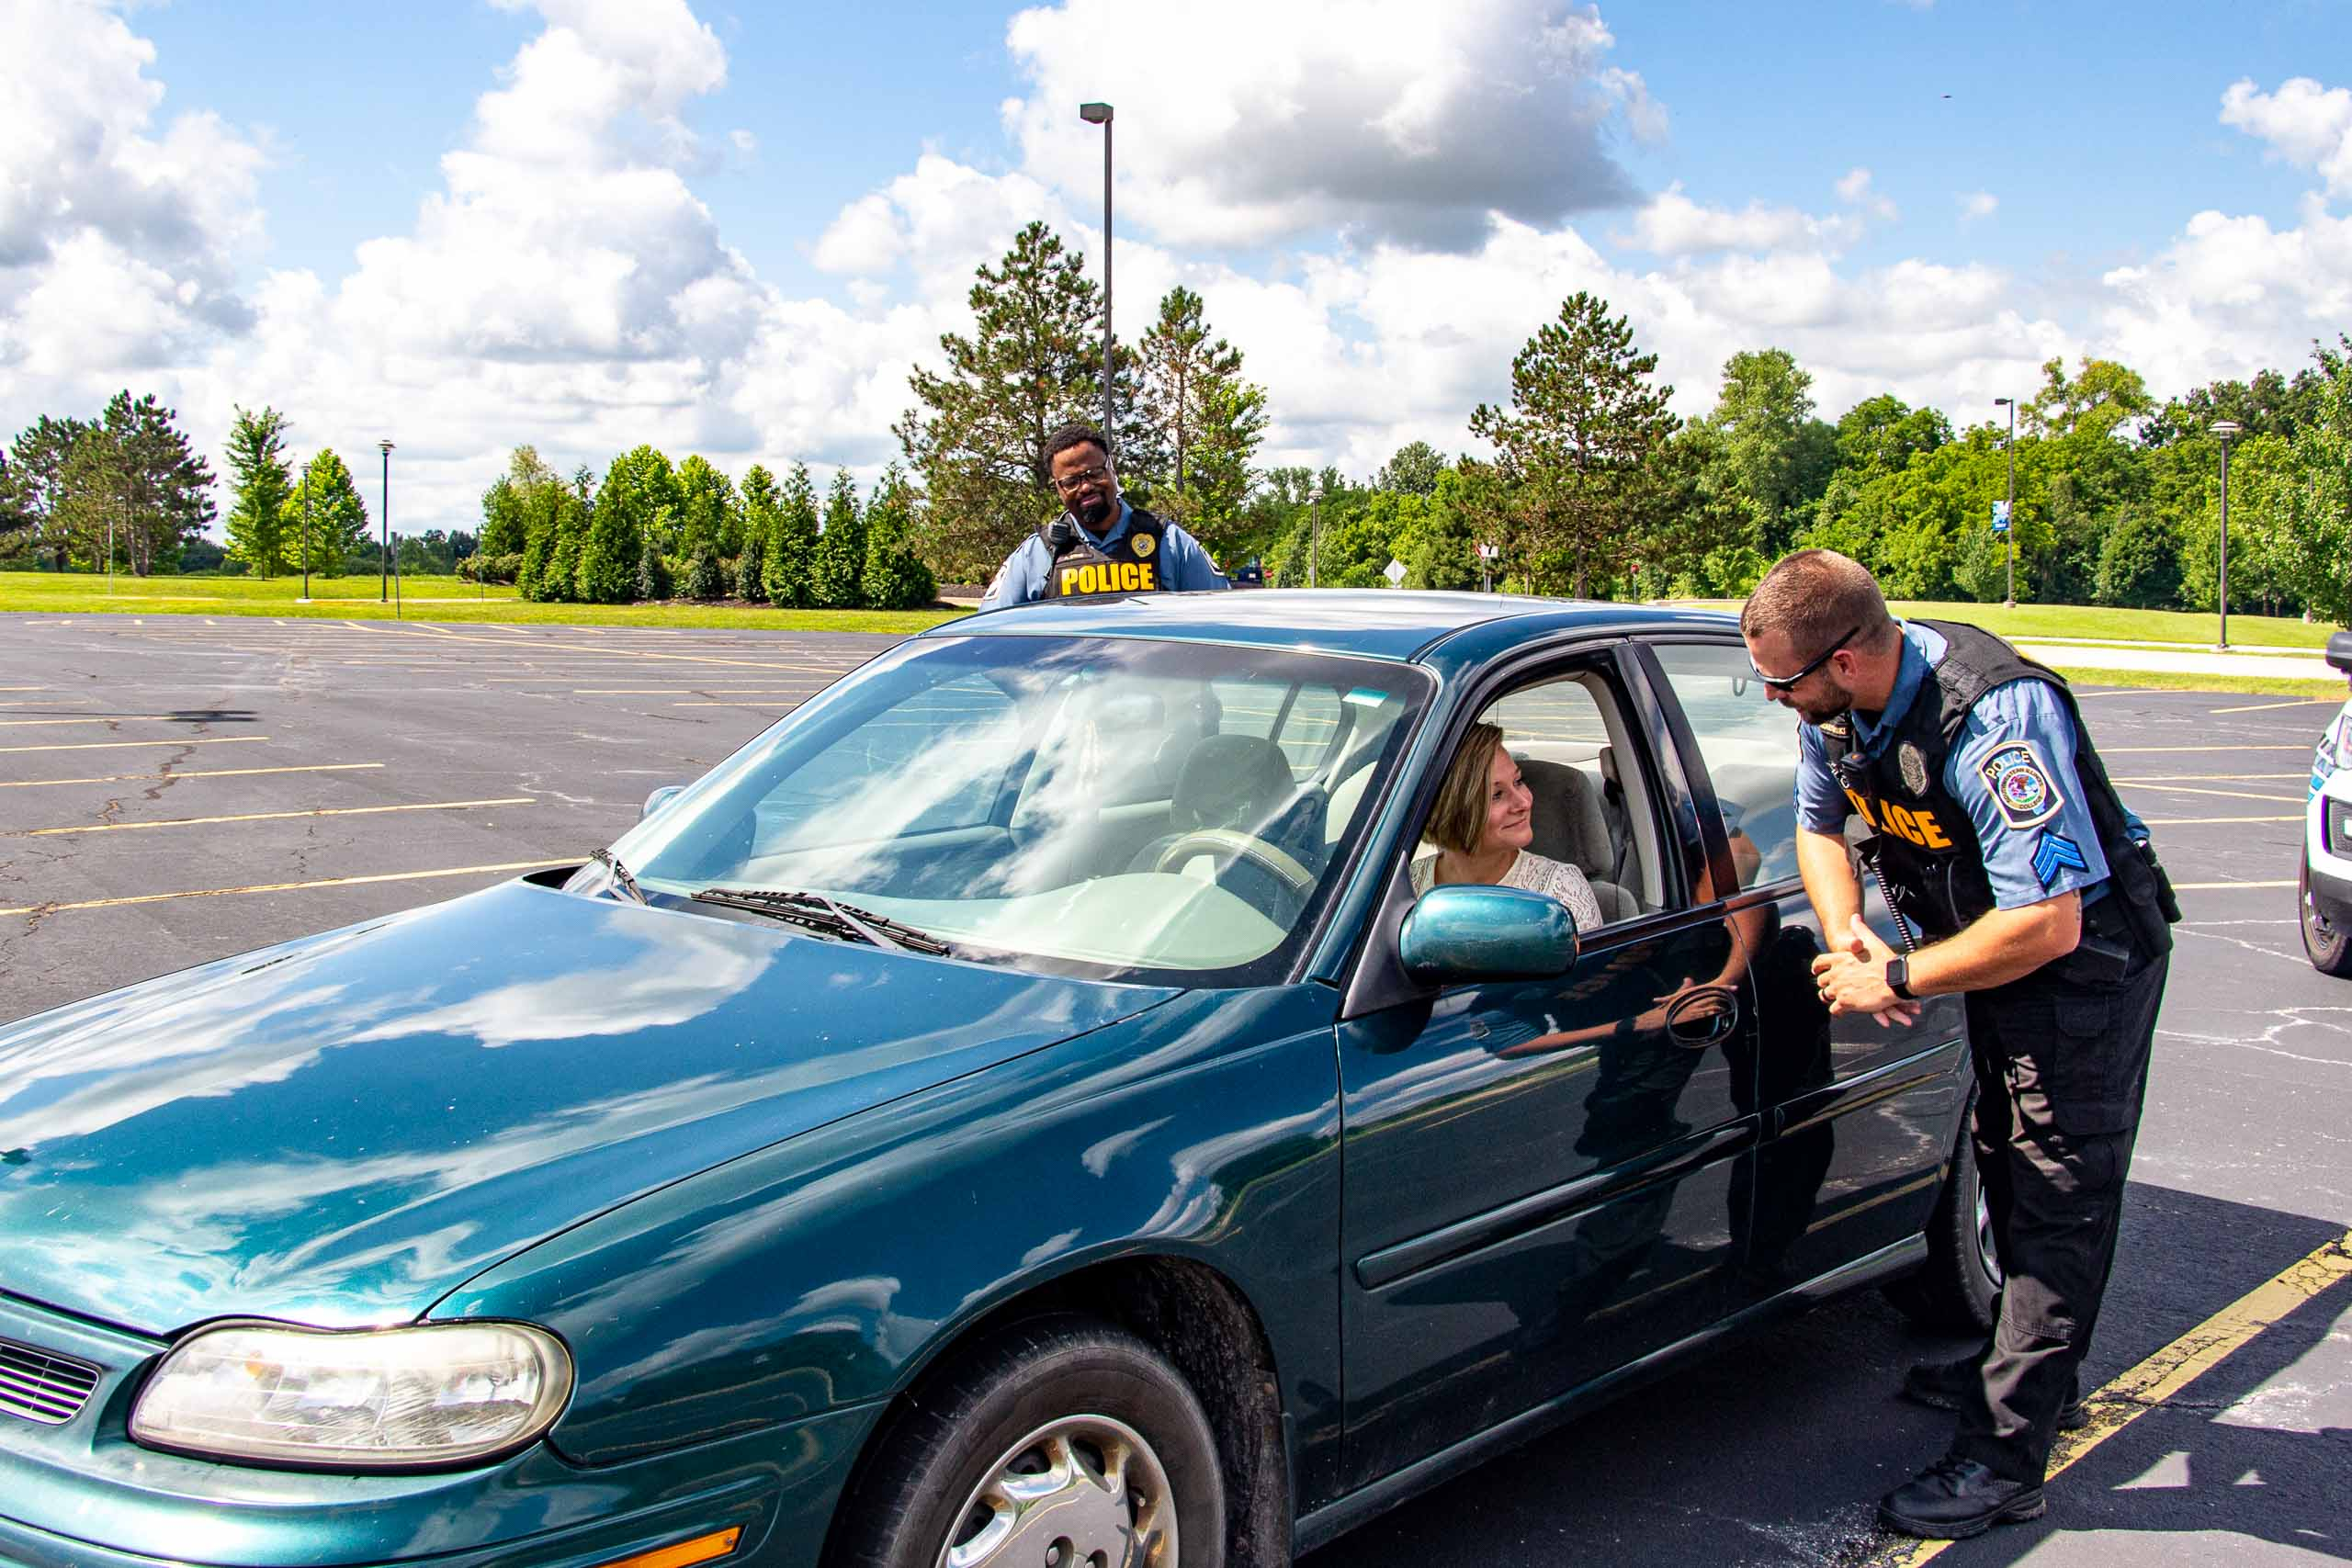 Officers doing a traffic stop.